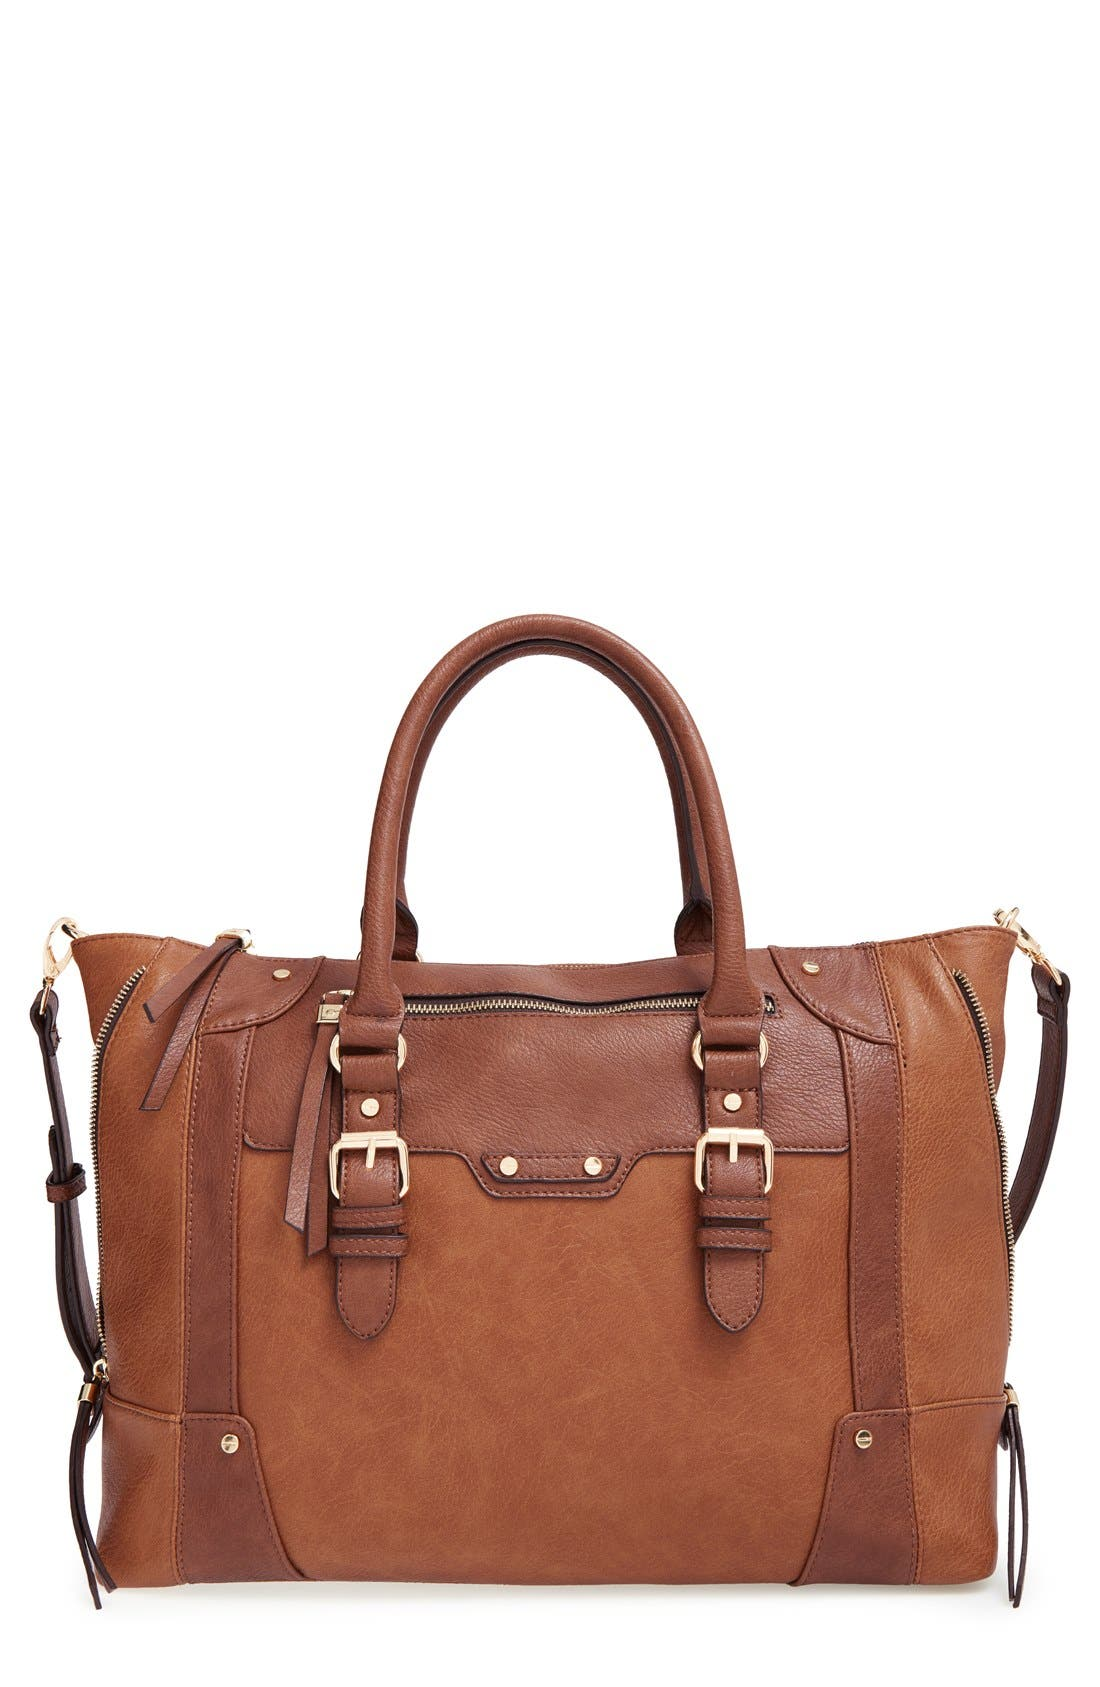 SOLE SOCIETY 'Susan' Winged Faux Leather Tote, Main, color, BROWN